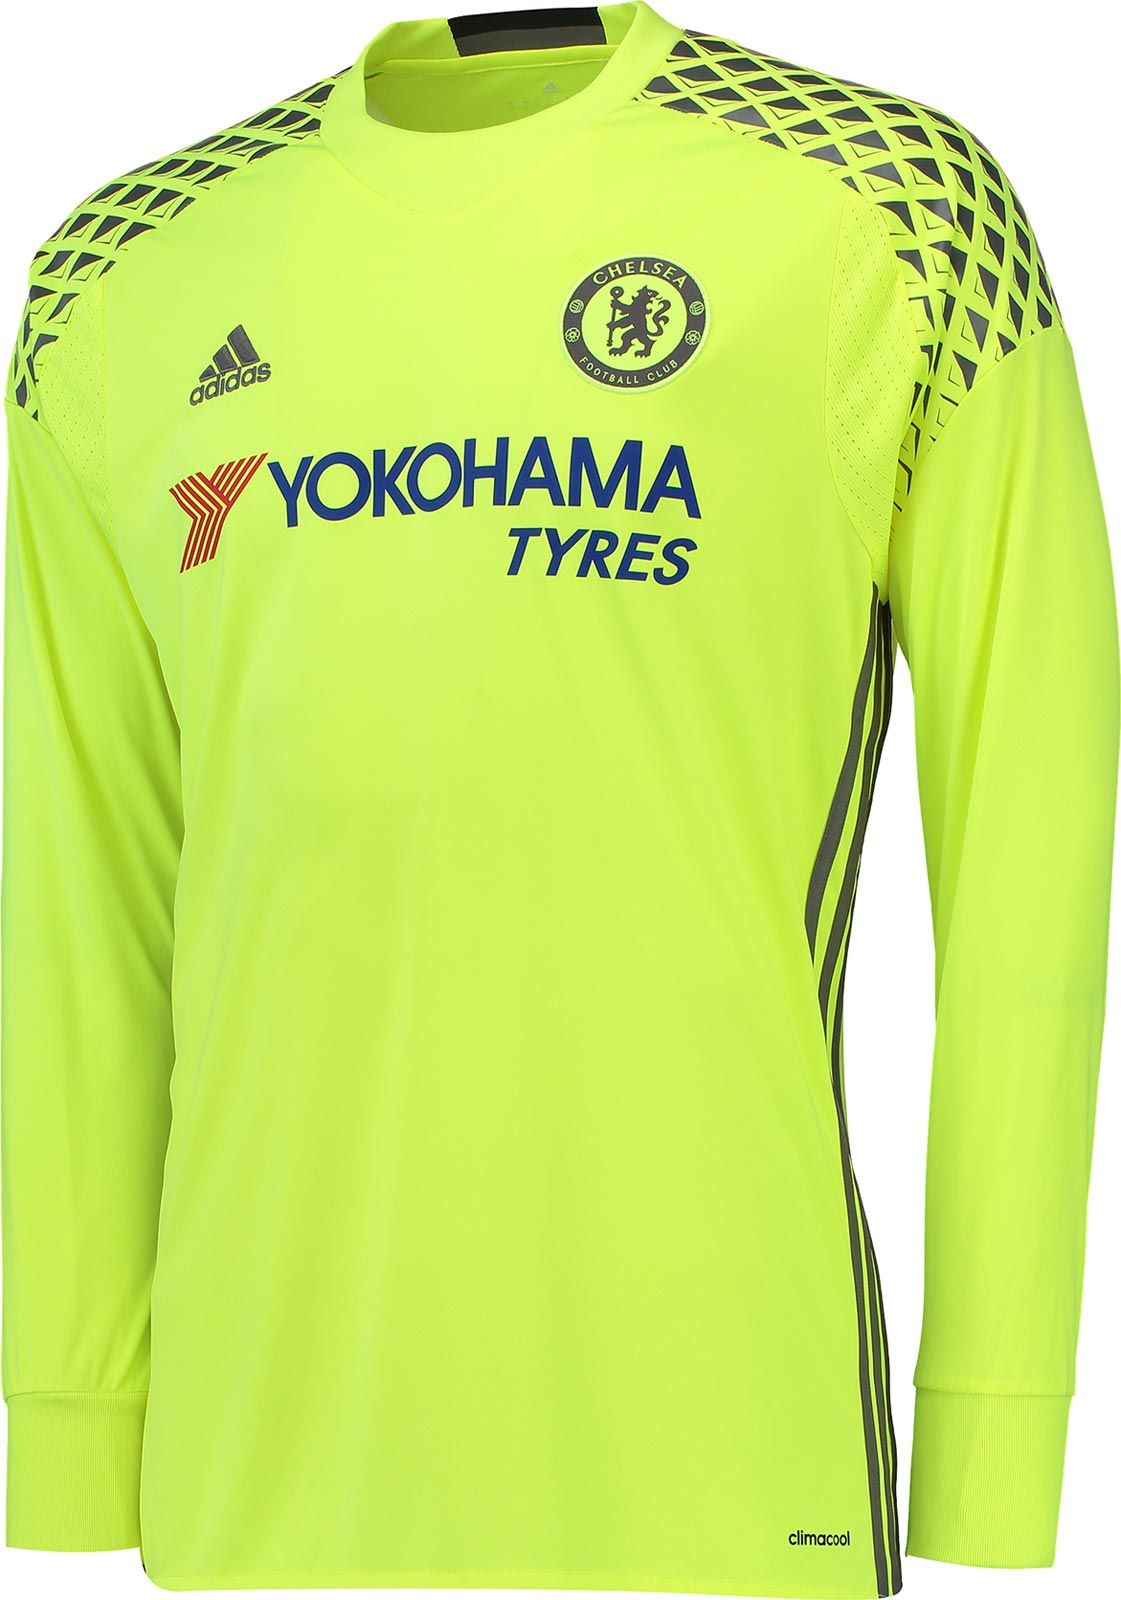 3407ce04205 The new Chelsea goalkeeper kit introduces a garish design in yellow and  grey